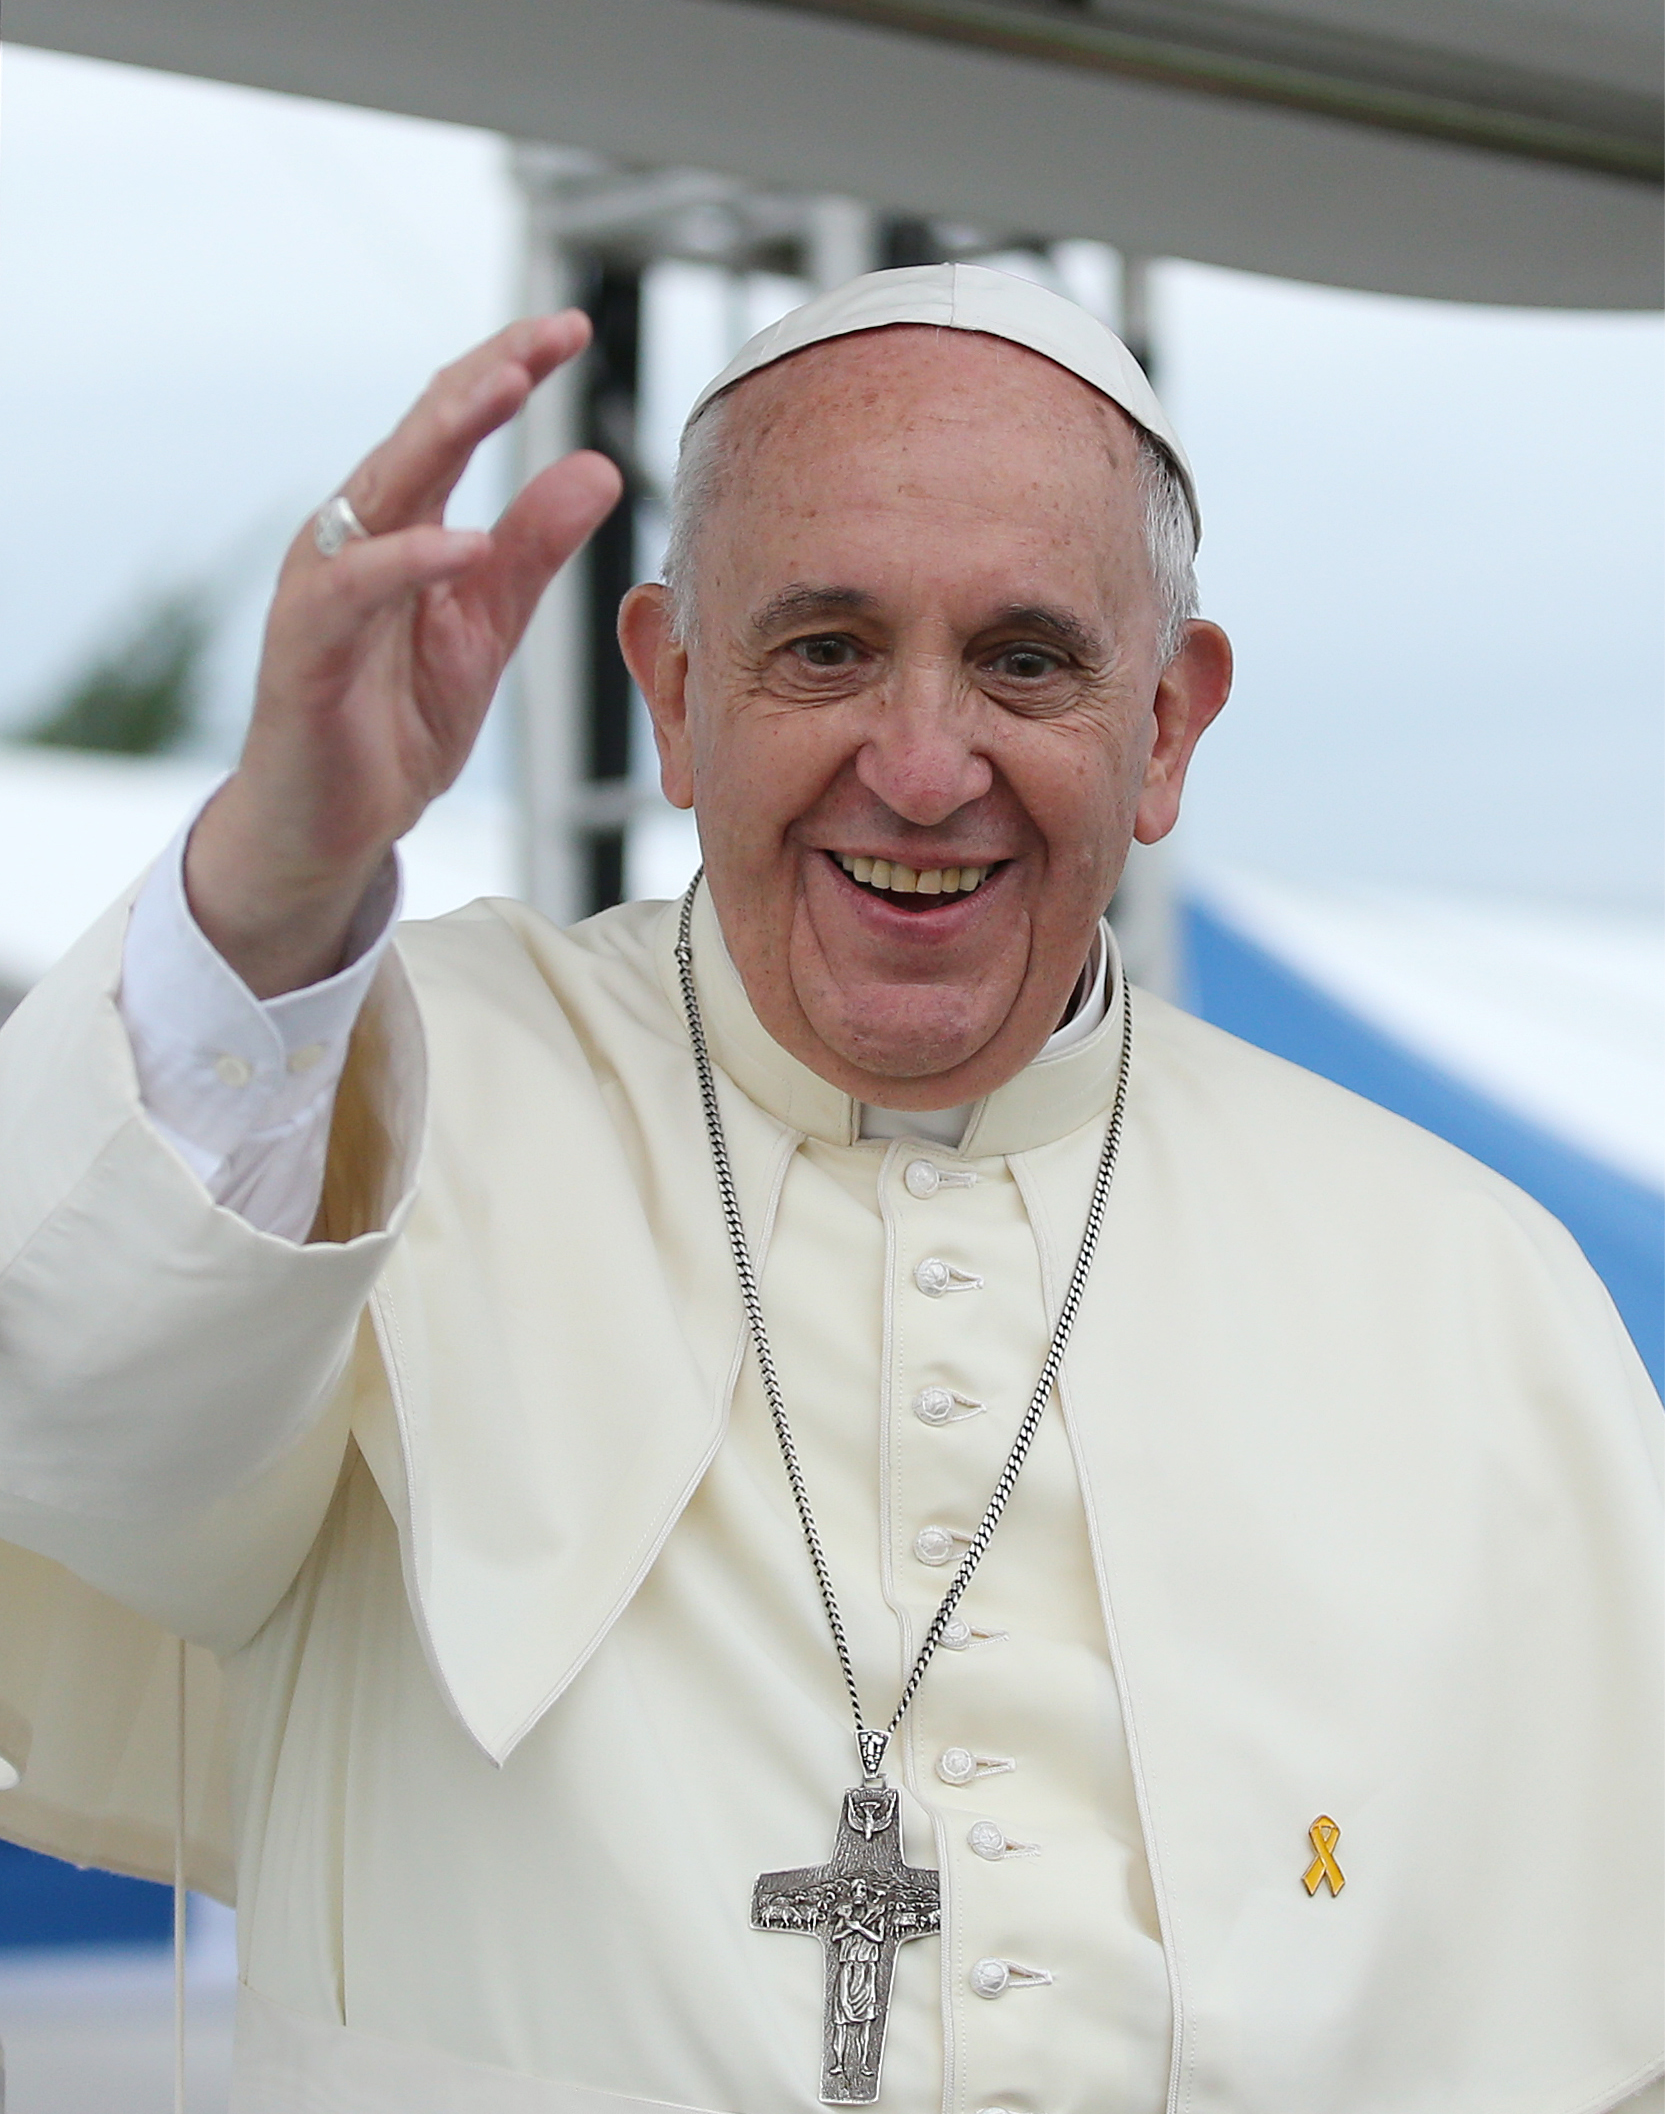 Pope Francis in 2014